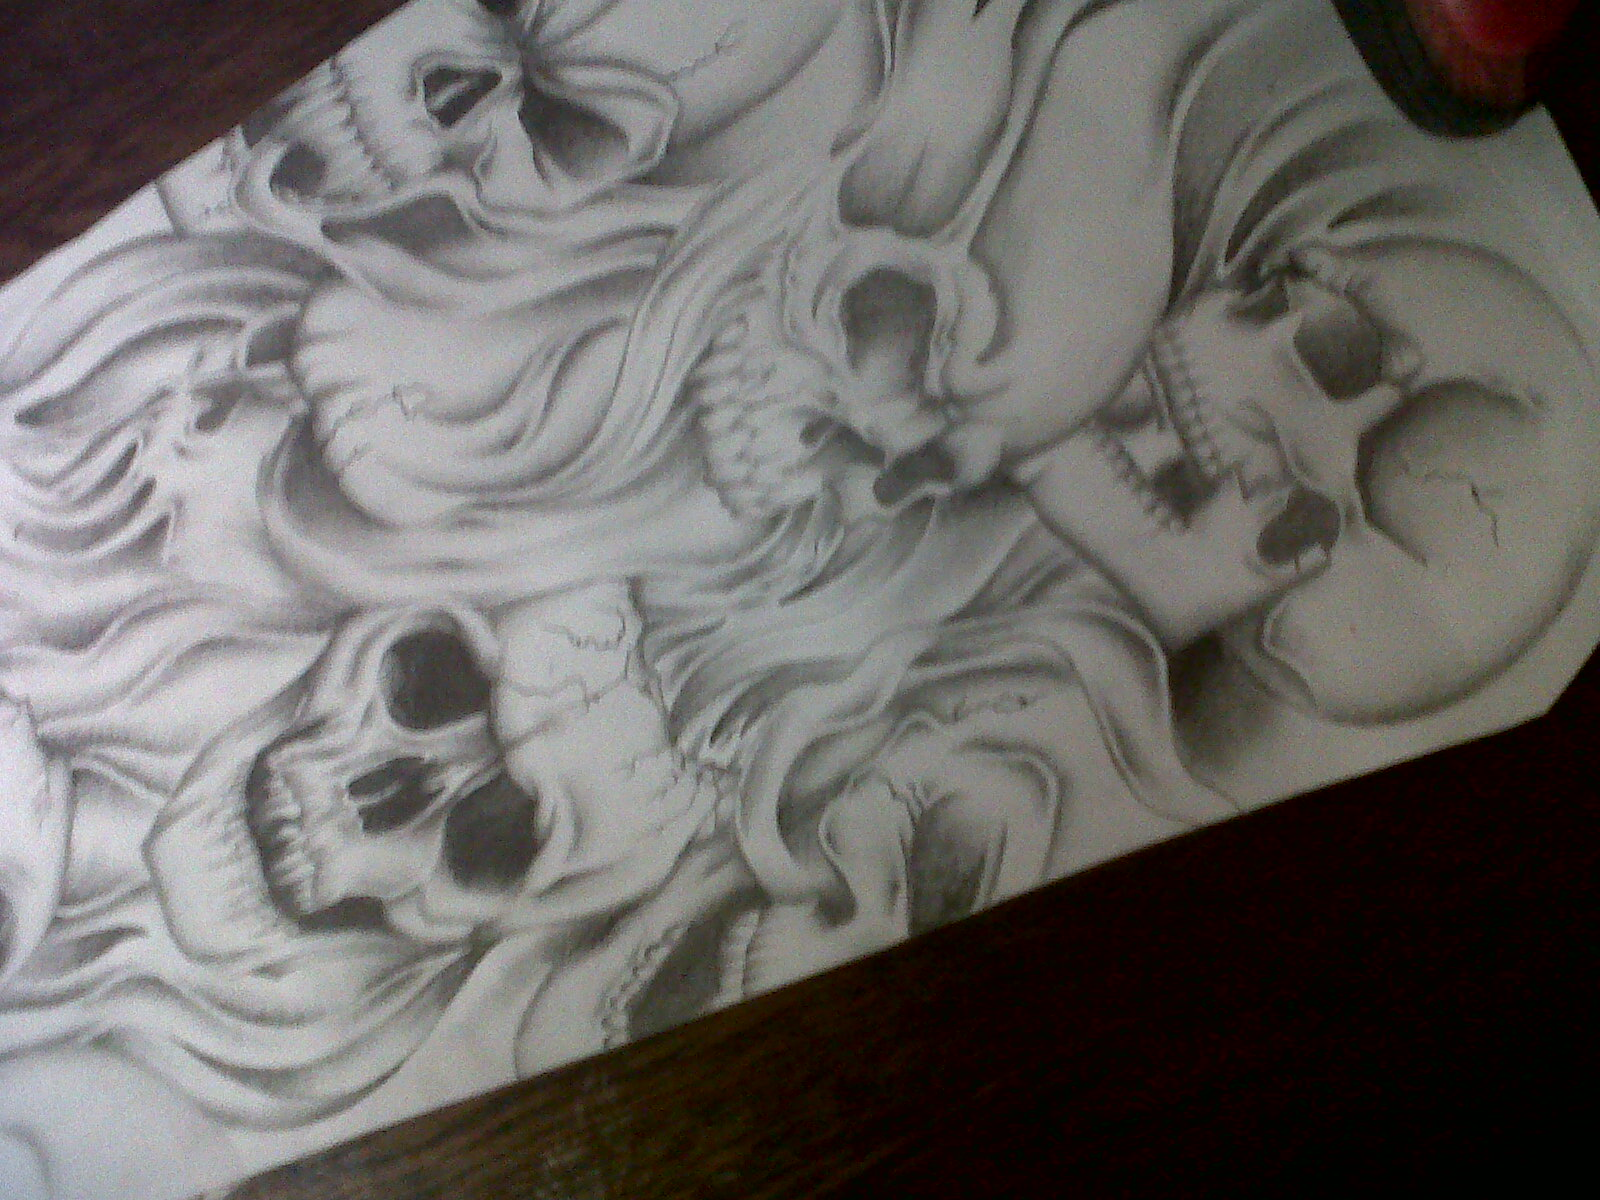 skull sleeve tattoo design by tattoosuzette on DeviantArt